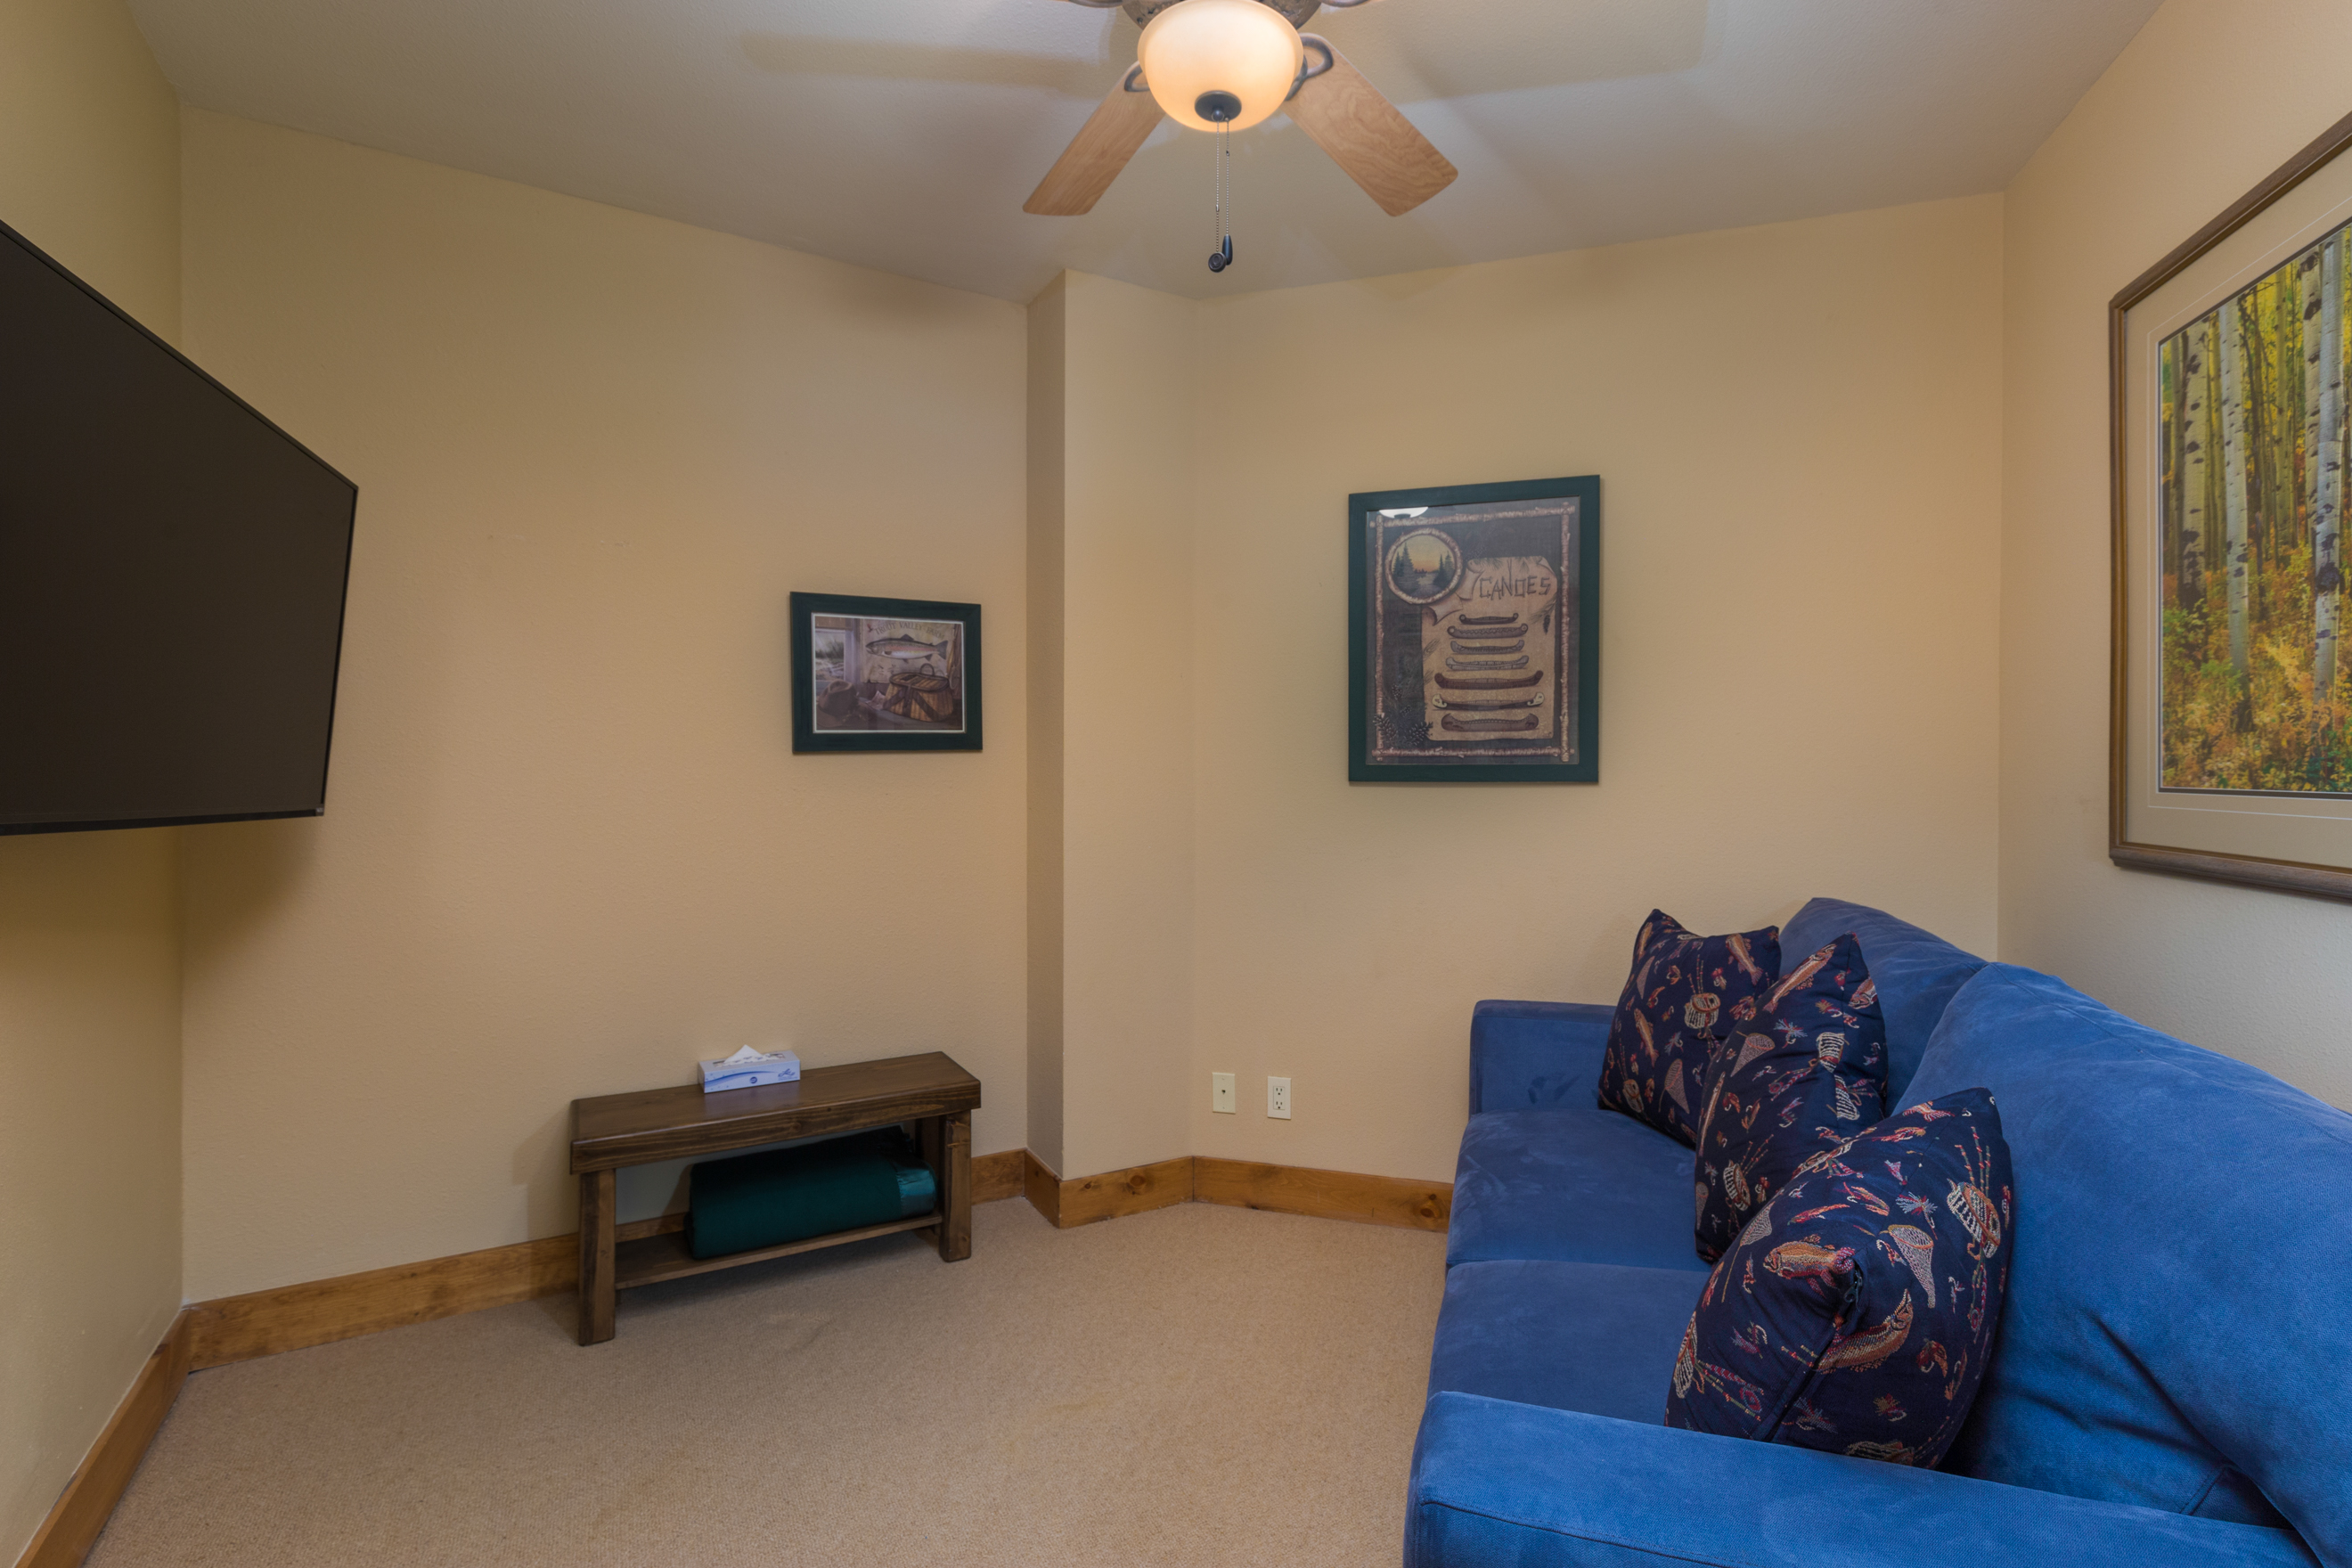 The den can be closed off from the main living space and has a queen-sized sleeper sofa and a mounted flat screen TV.